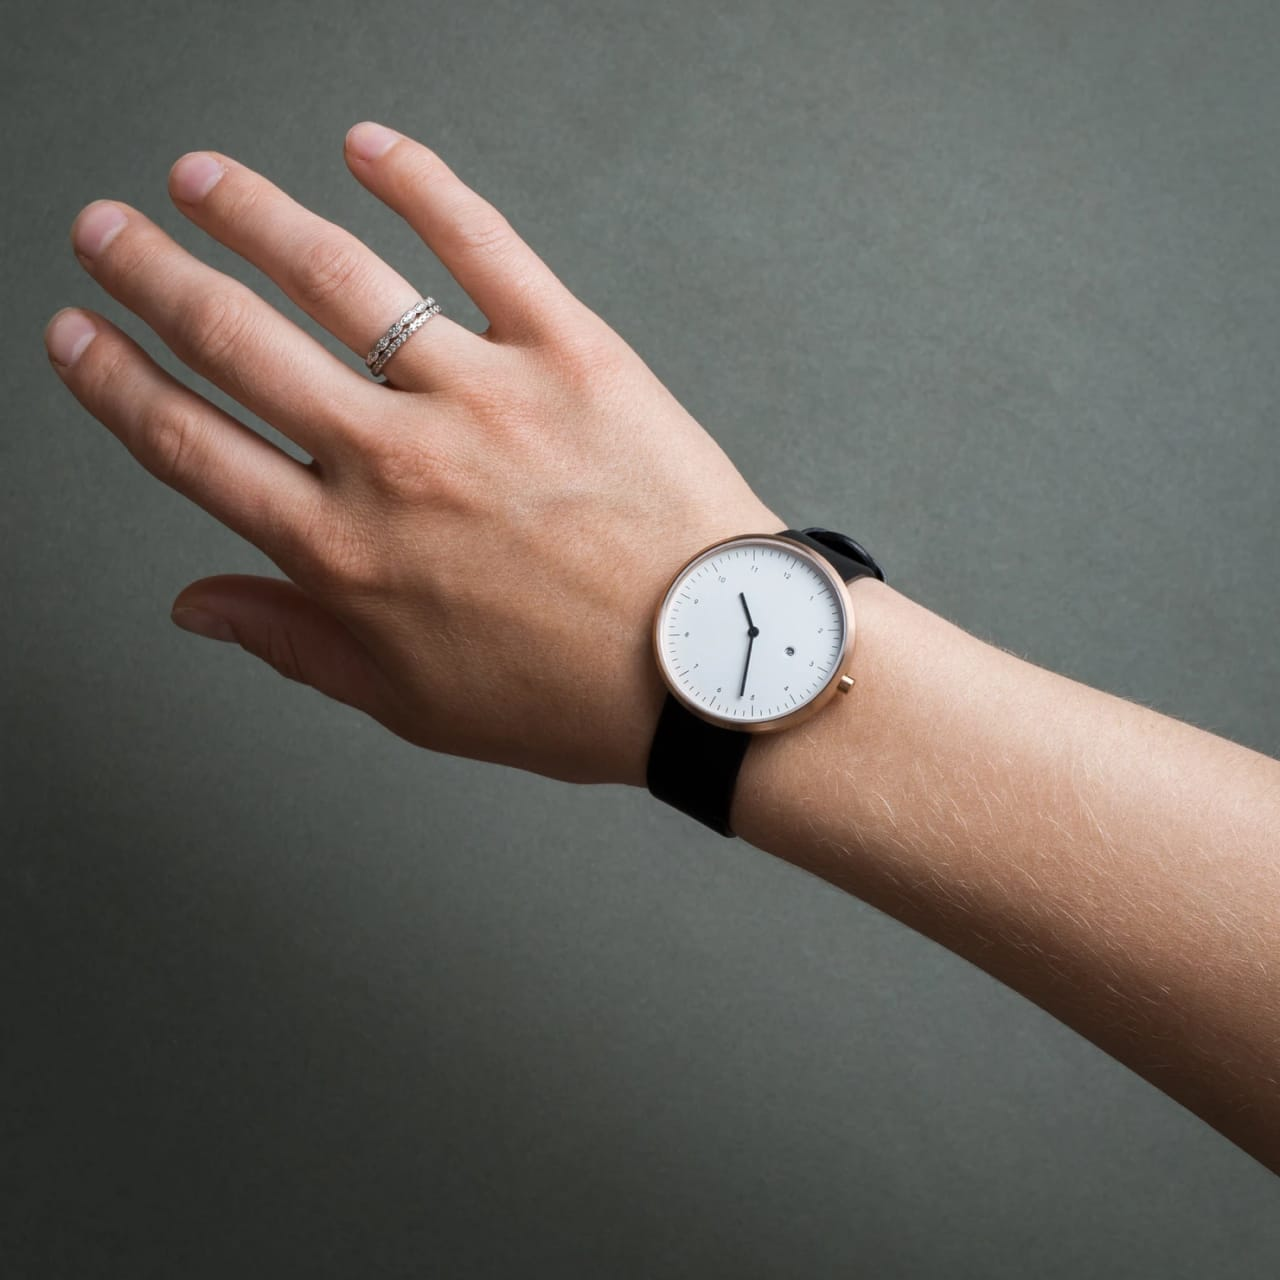 Model wearing minimalist watch with black wristband and white watch face.